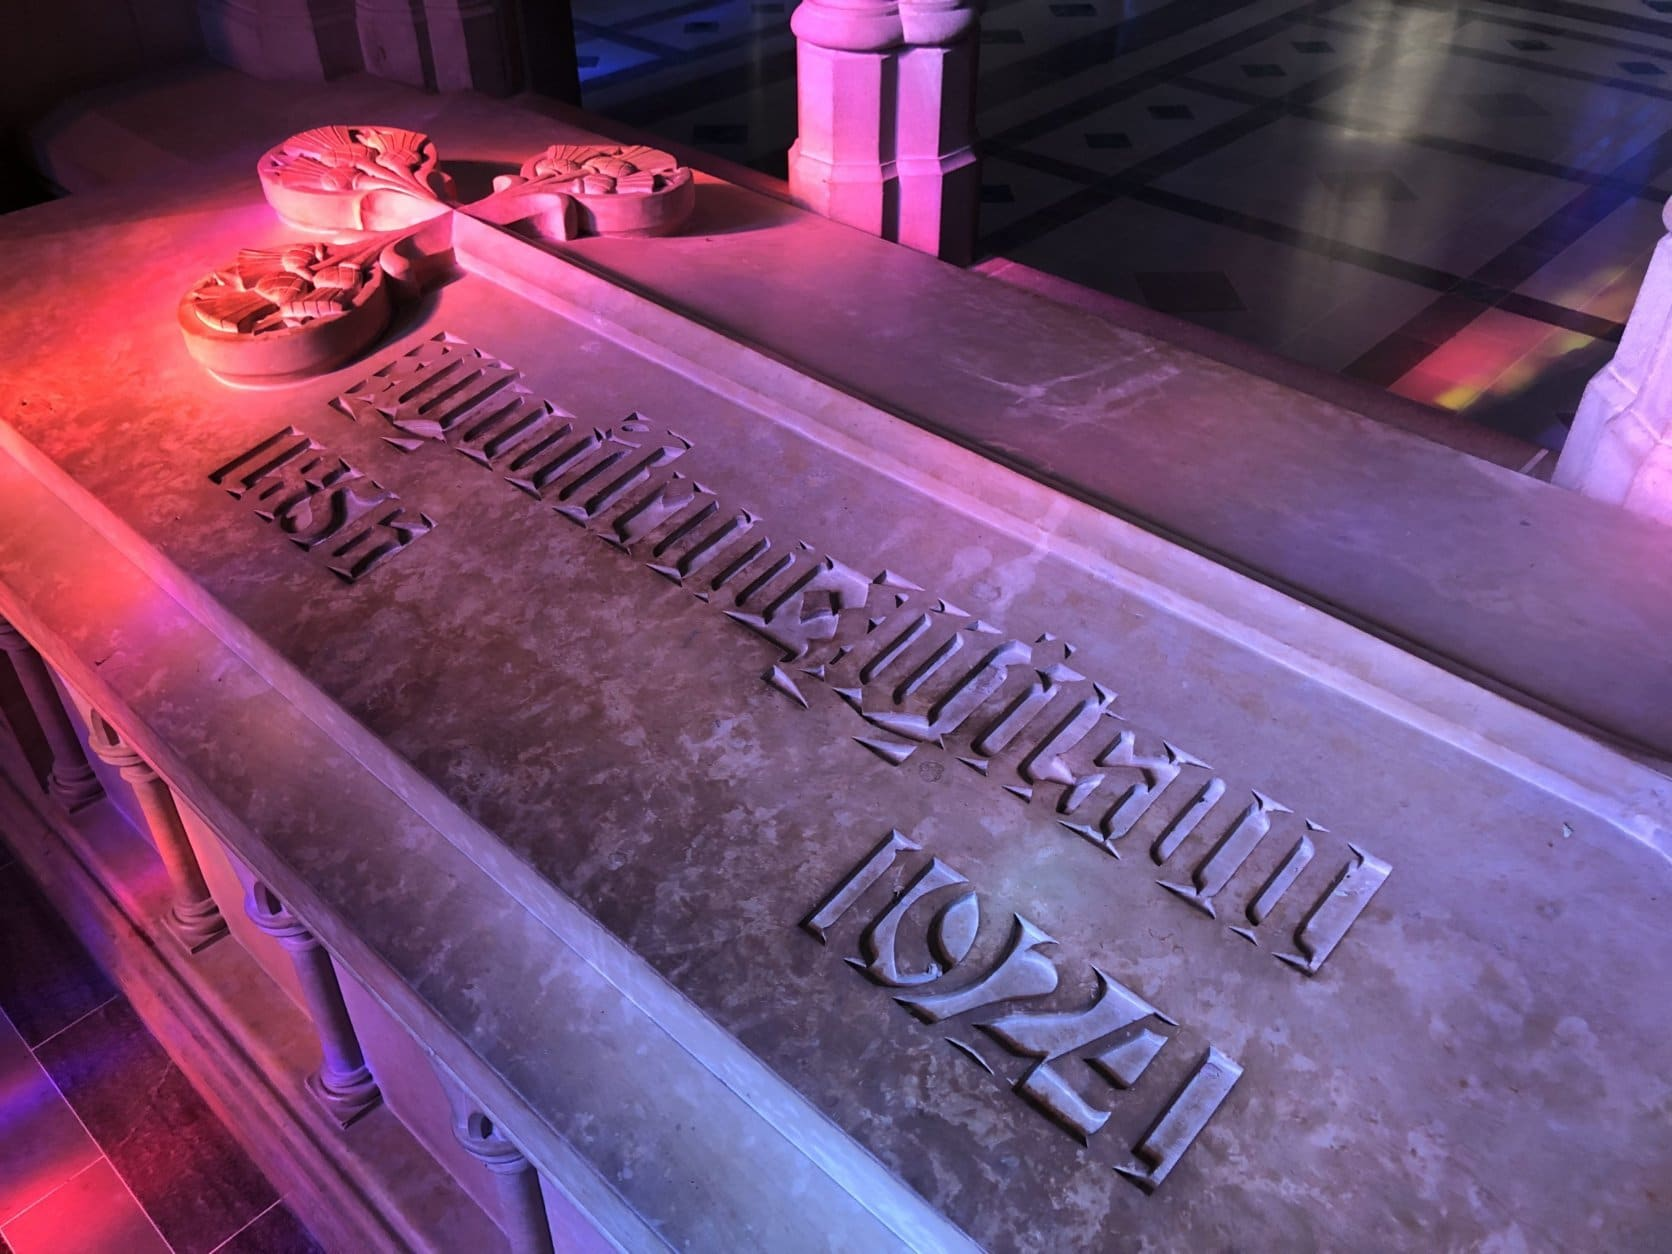 The only U.S. president buried in the nation's capital is Woodrow Wilson, who is interred at the cathedral with his wife, Edith. (WTOP/Kristi King)